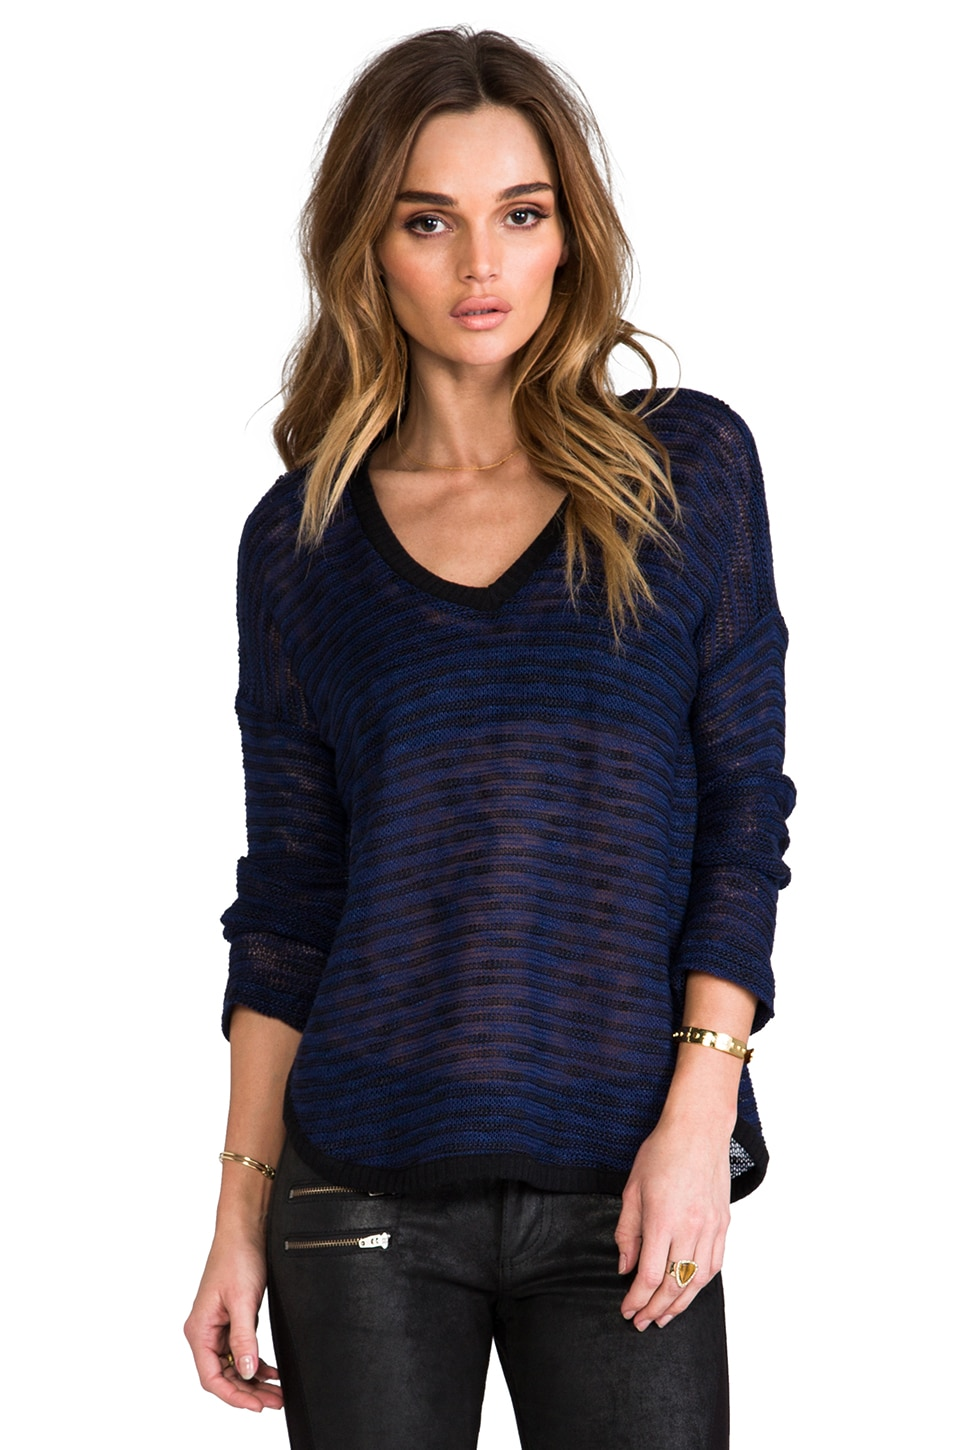 Splendid Fireside V-Neck Sweater in Navy